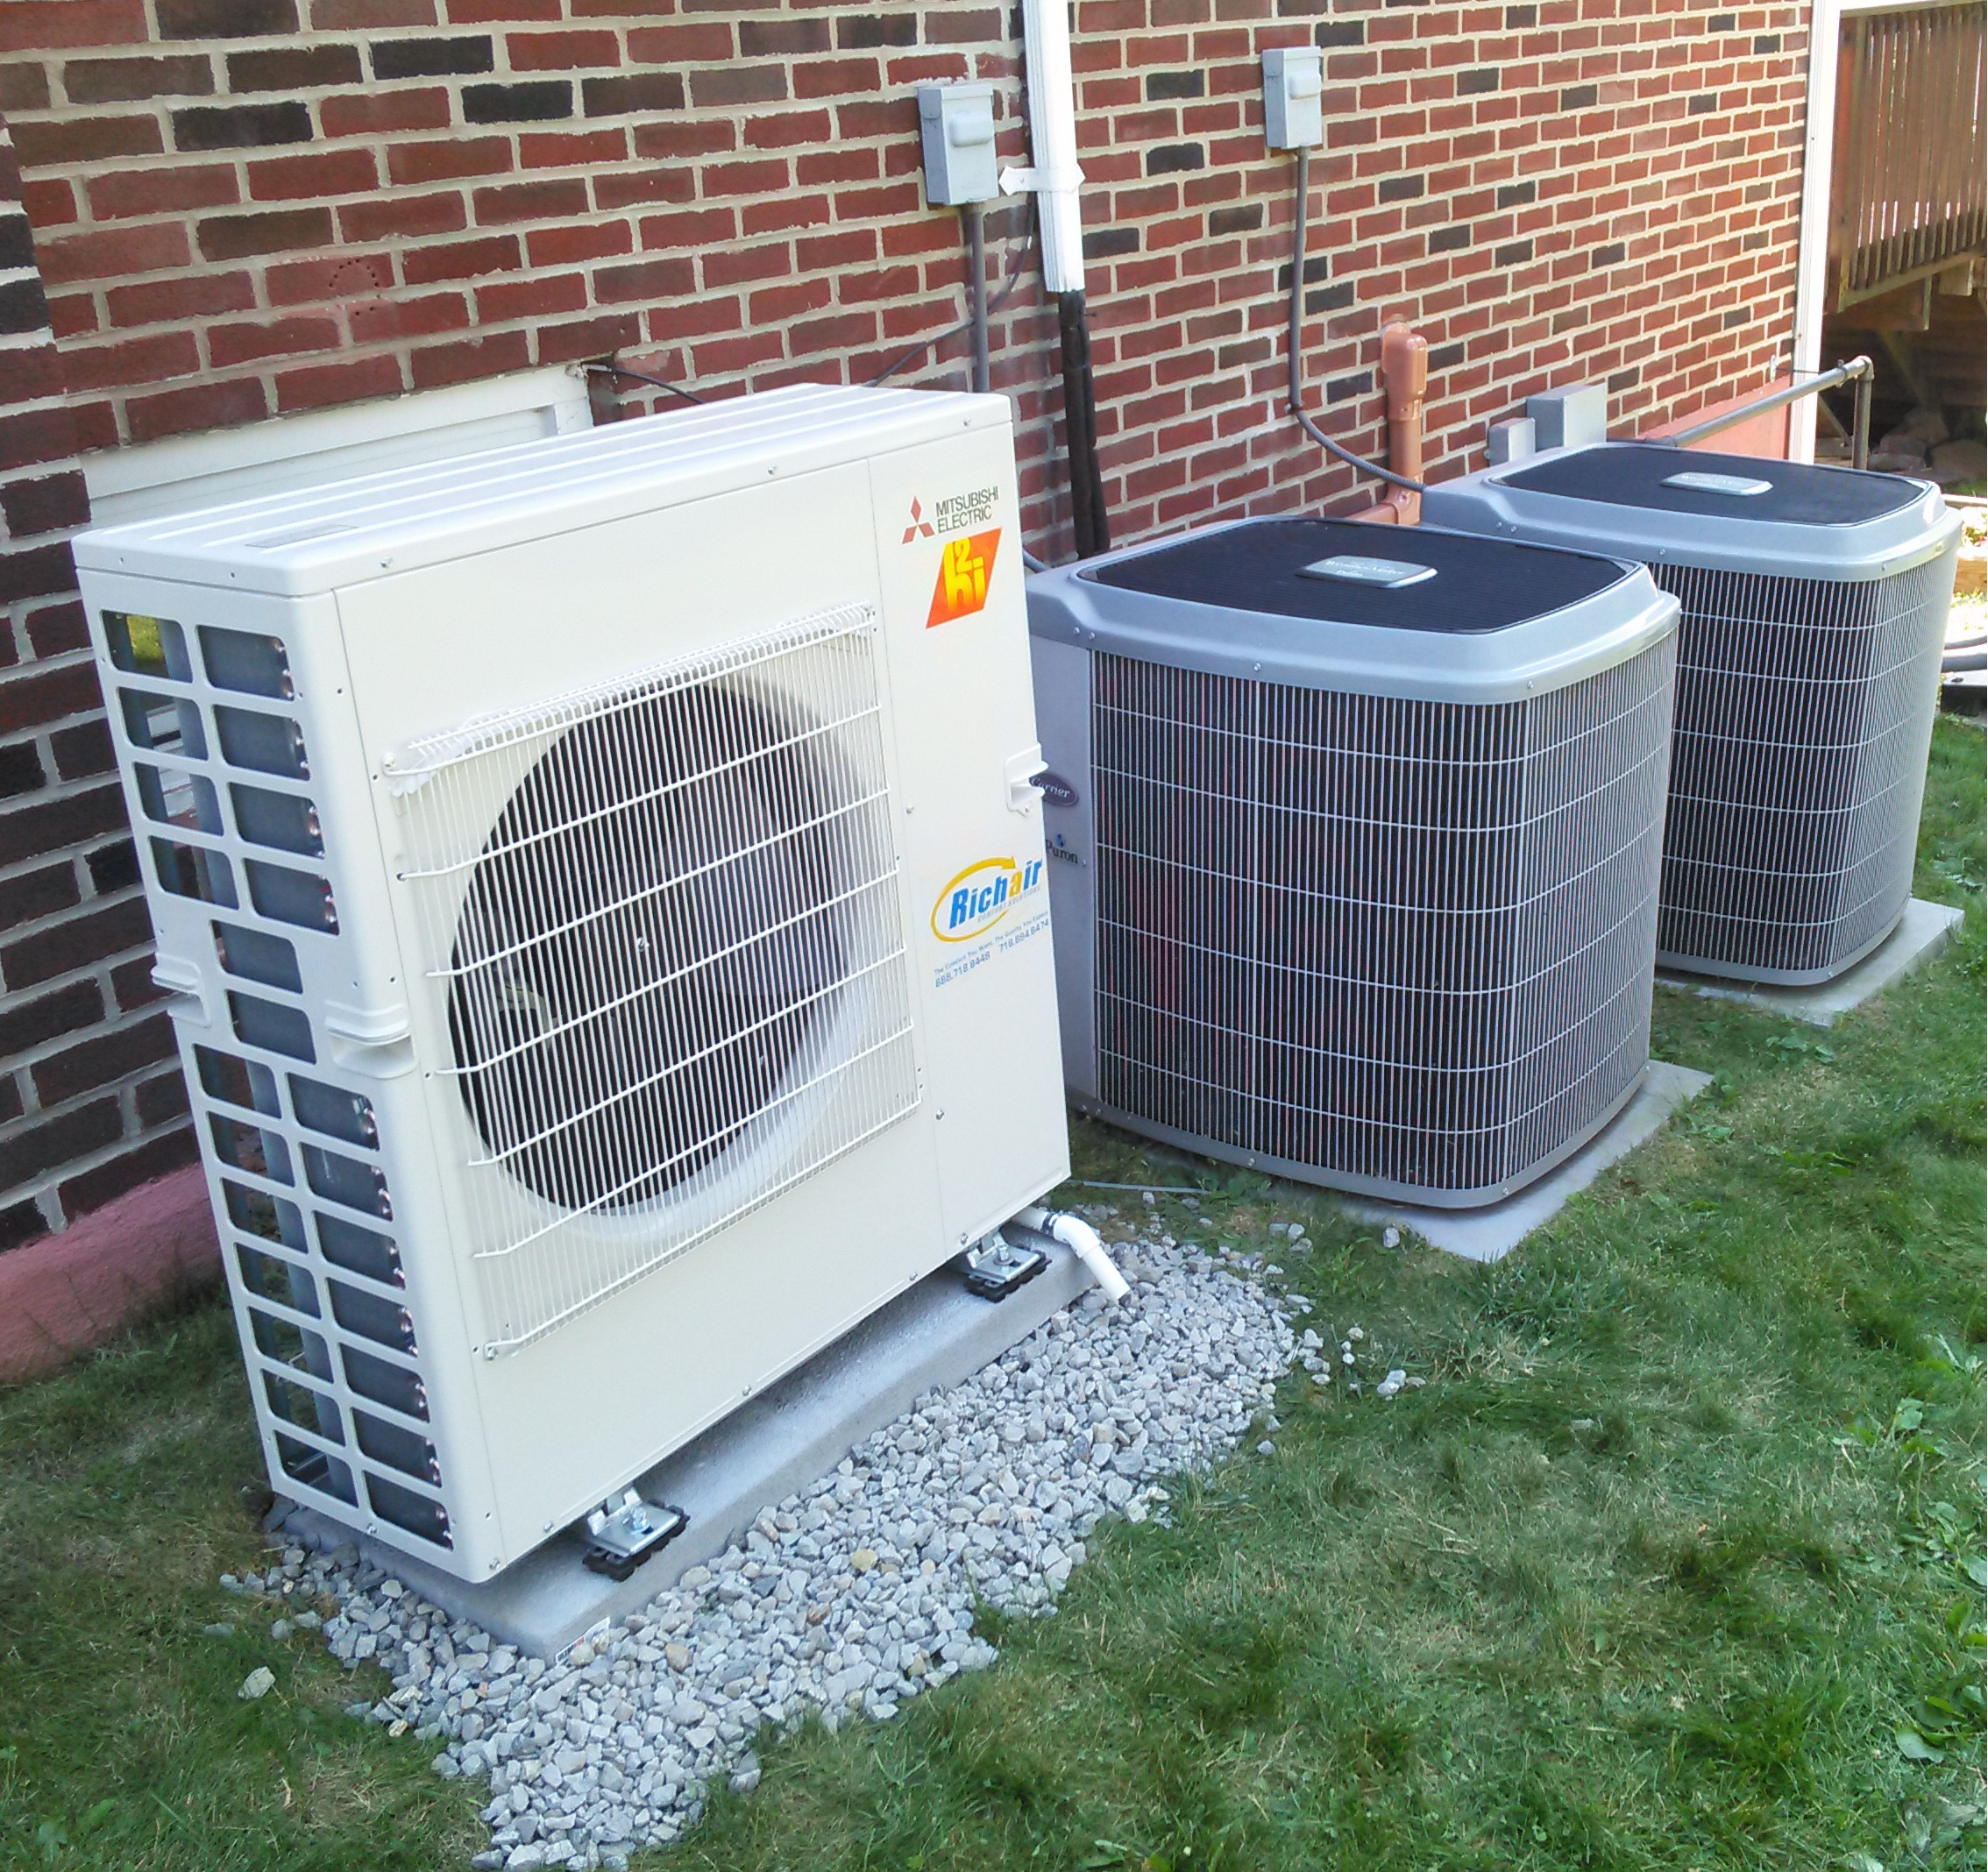 Mini split installation by Richair Comfort Solutions, near Maspeth, NY